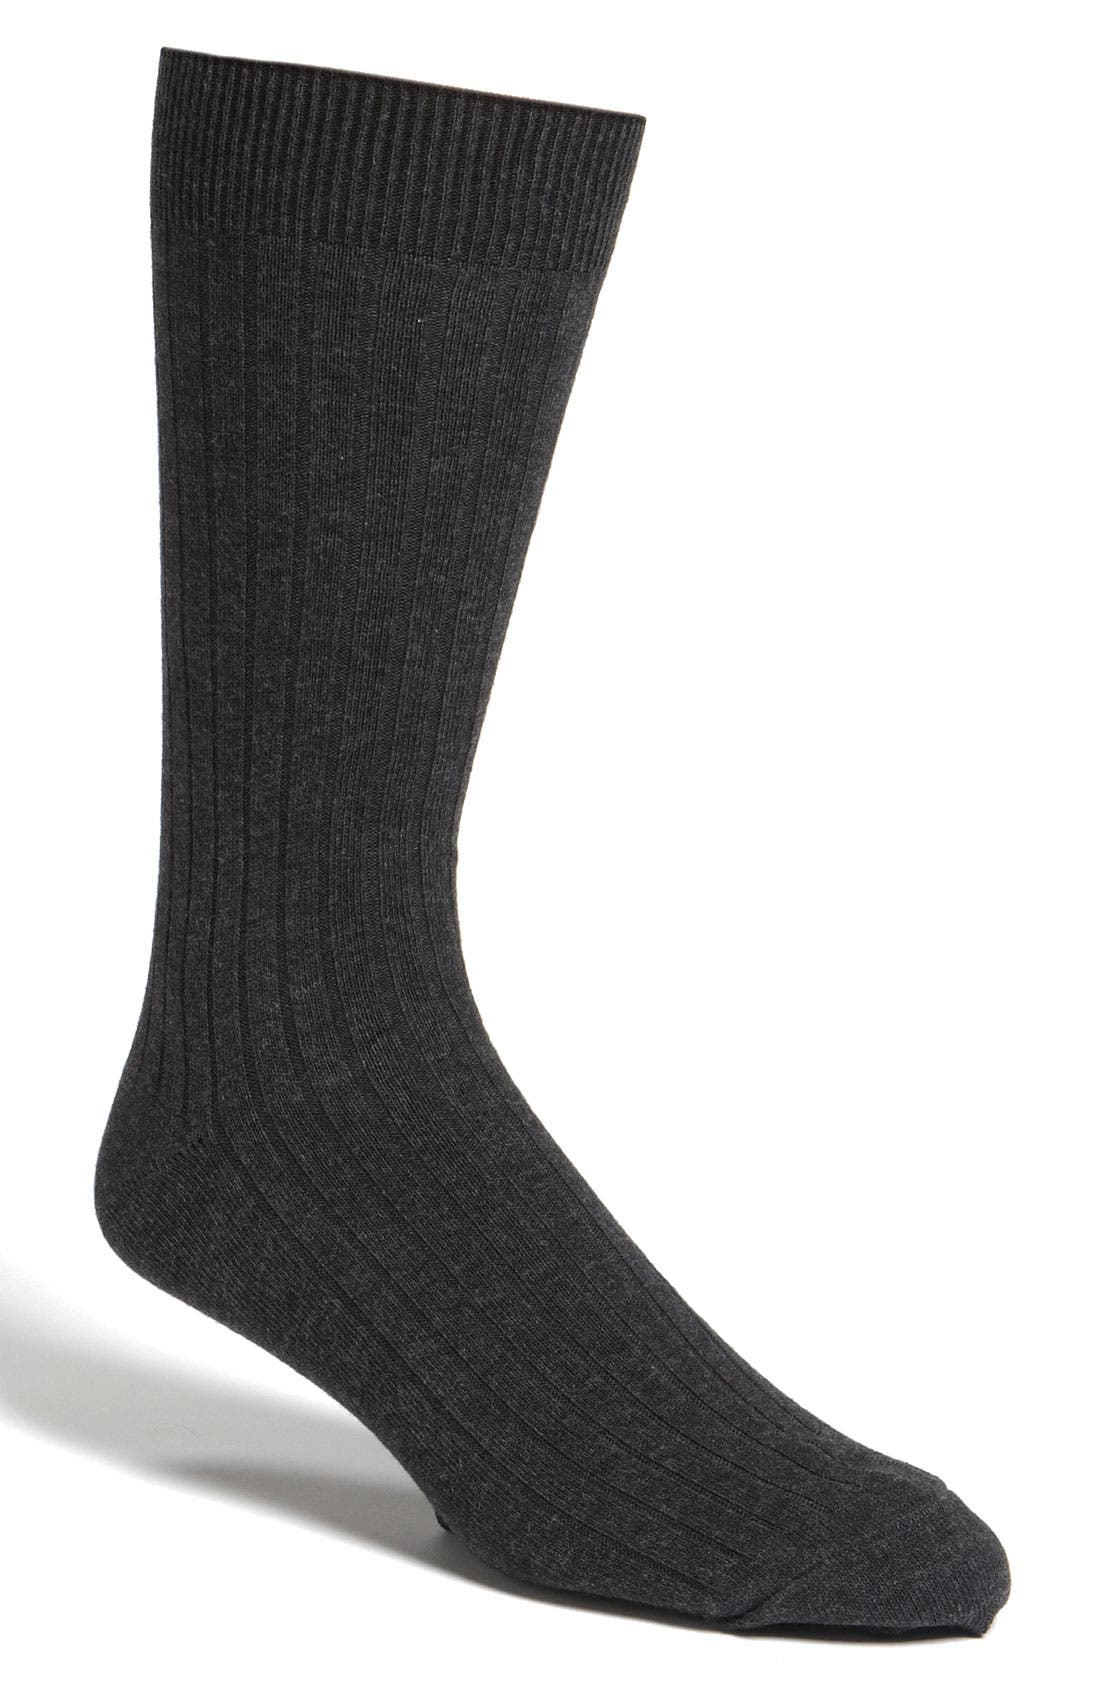 Cotton Blend Socks,                         Main,                         color, BLACK HEATHER